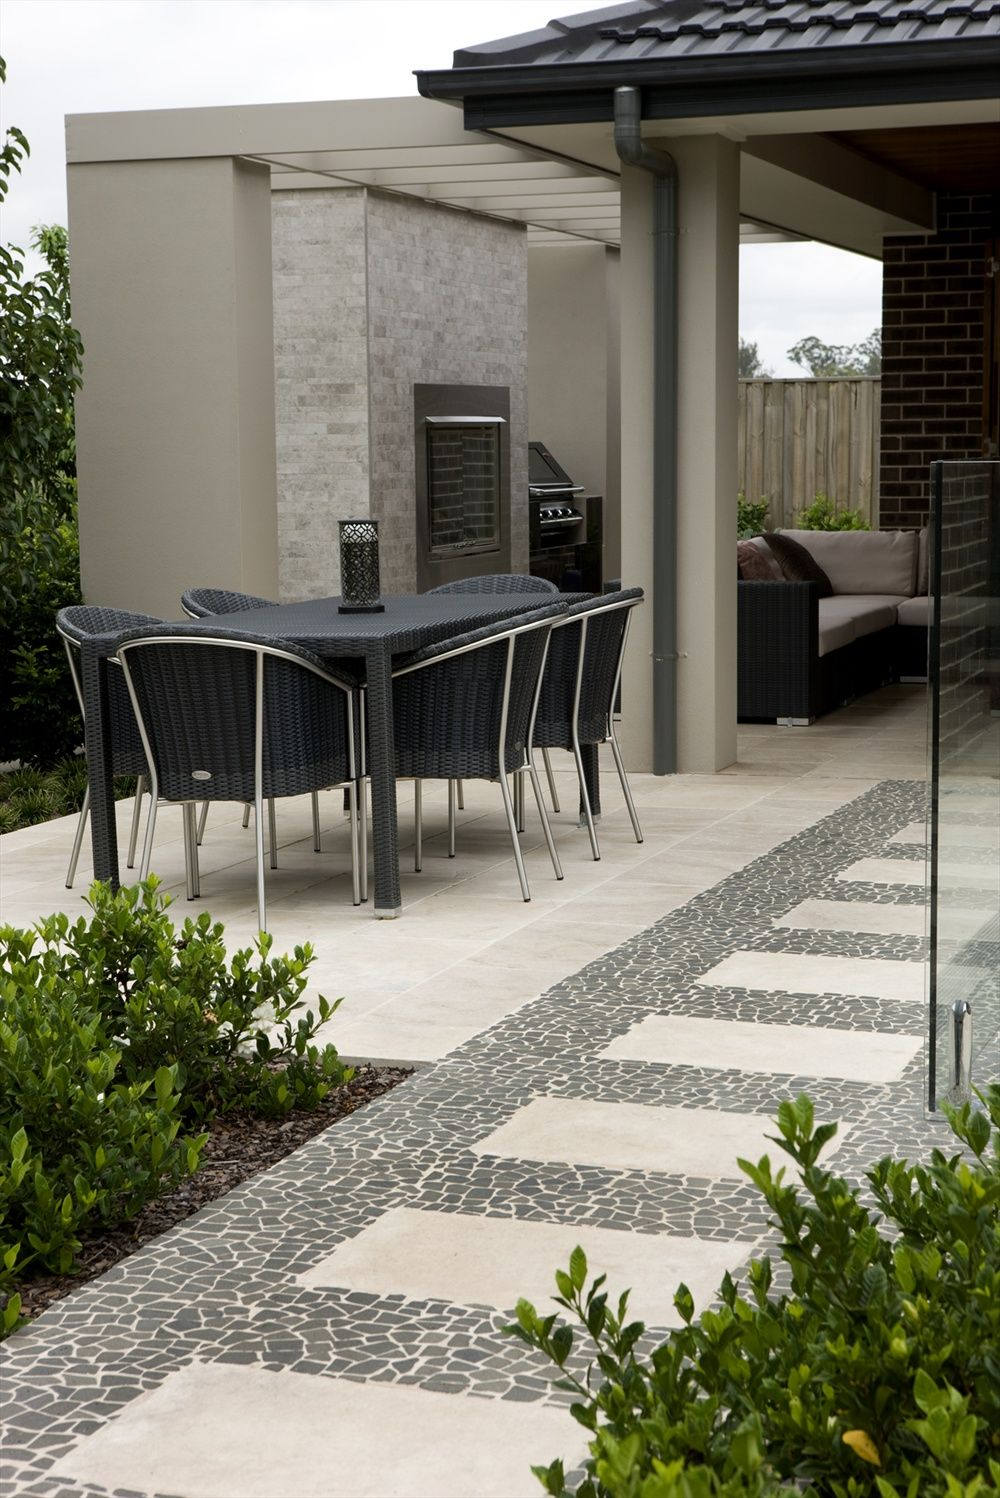 What Do You Think Of This Outdoor Tile Idea I Got From Beaumont Tiles Check Out More Ideas Here Tile Com Au Roomideas Aspx Backyard Patio Patio Outdoor Tiles